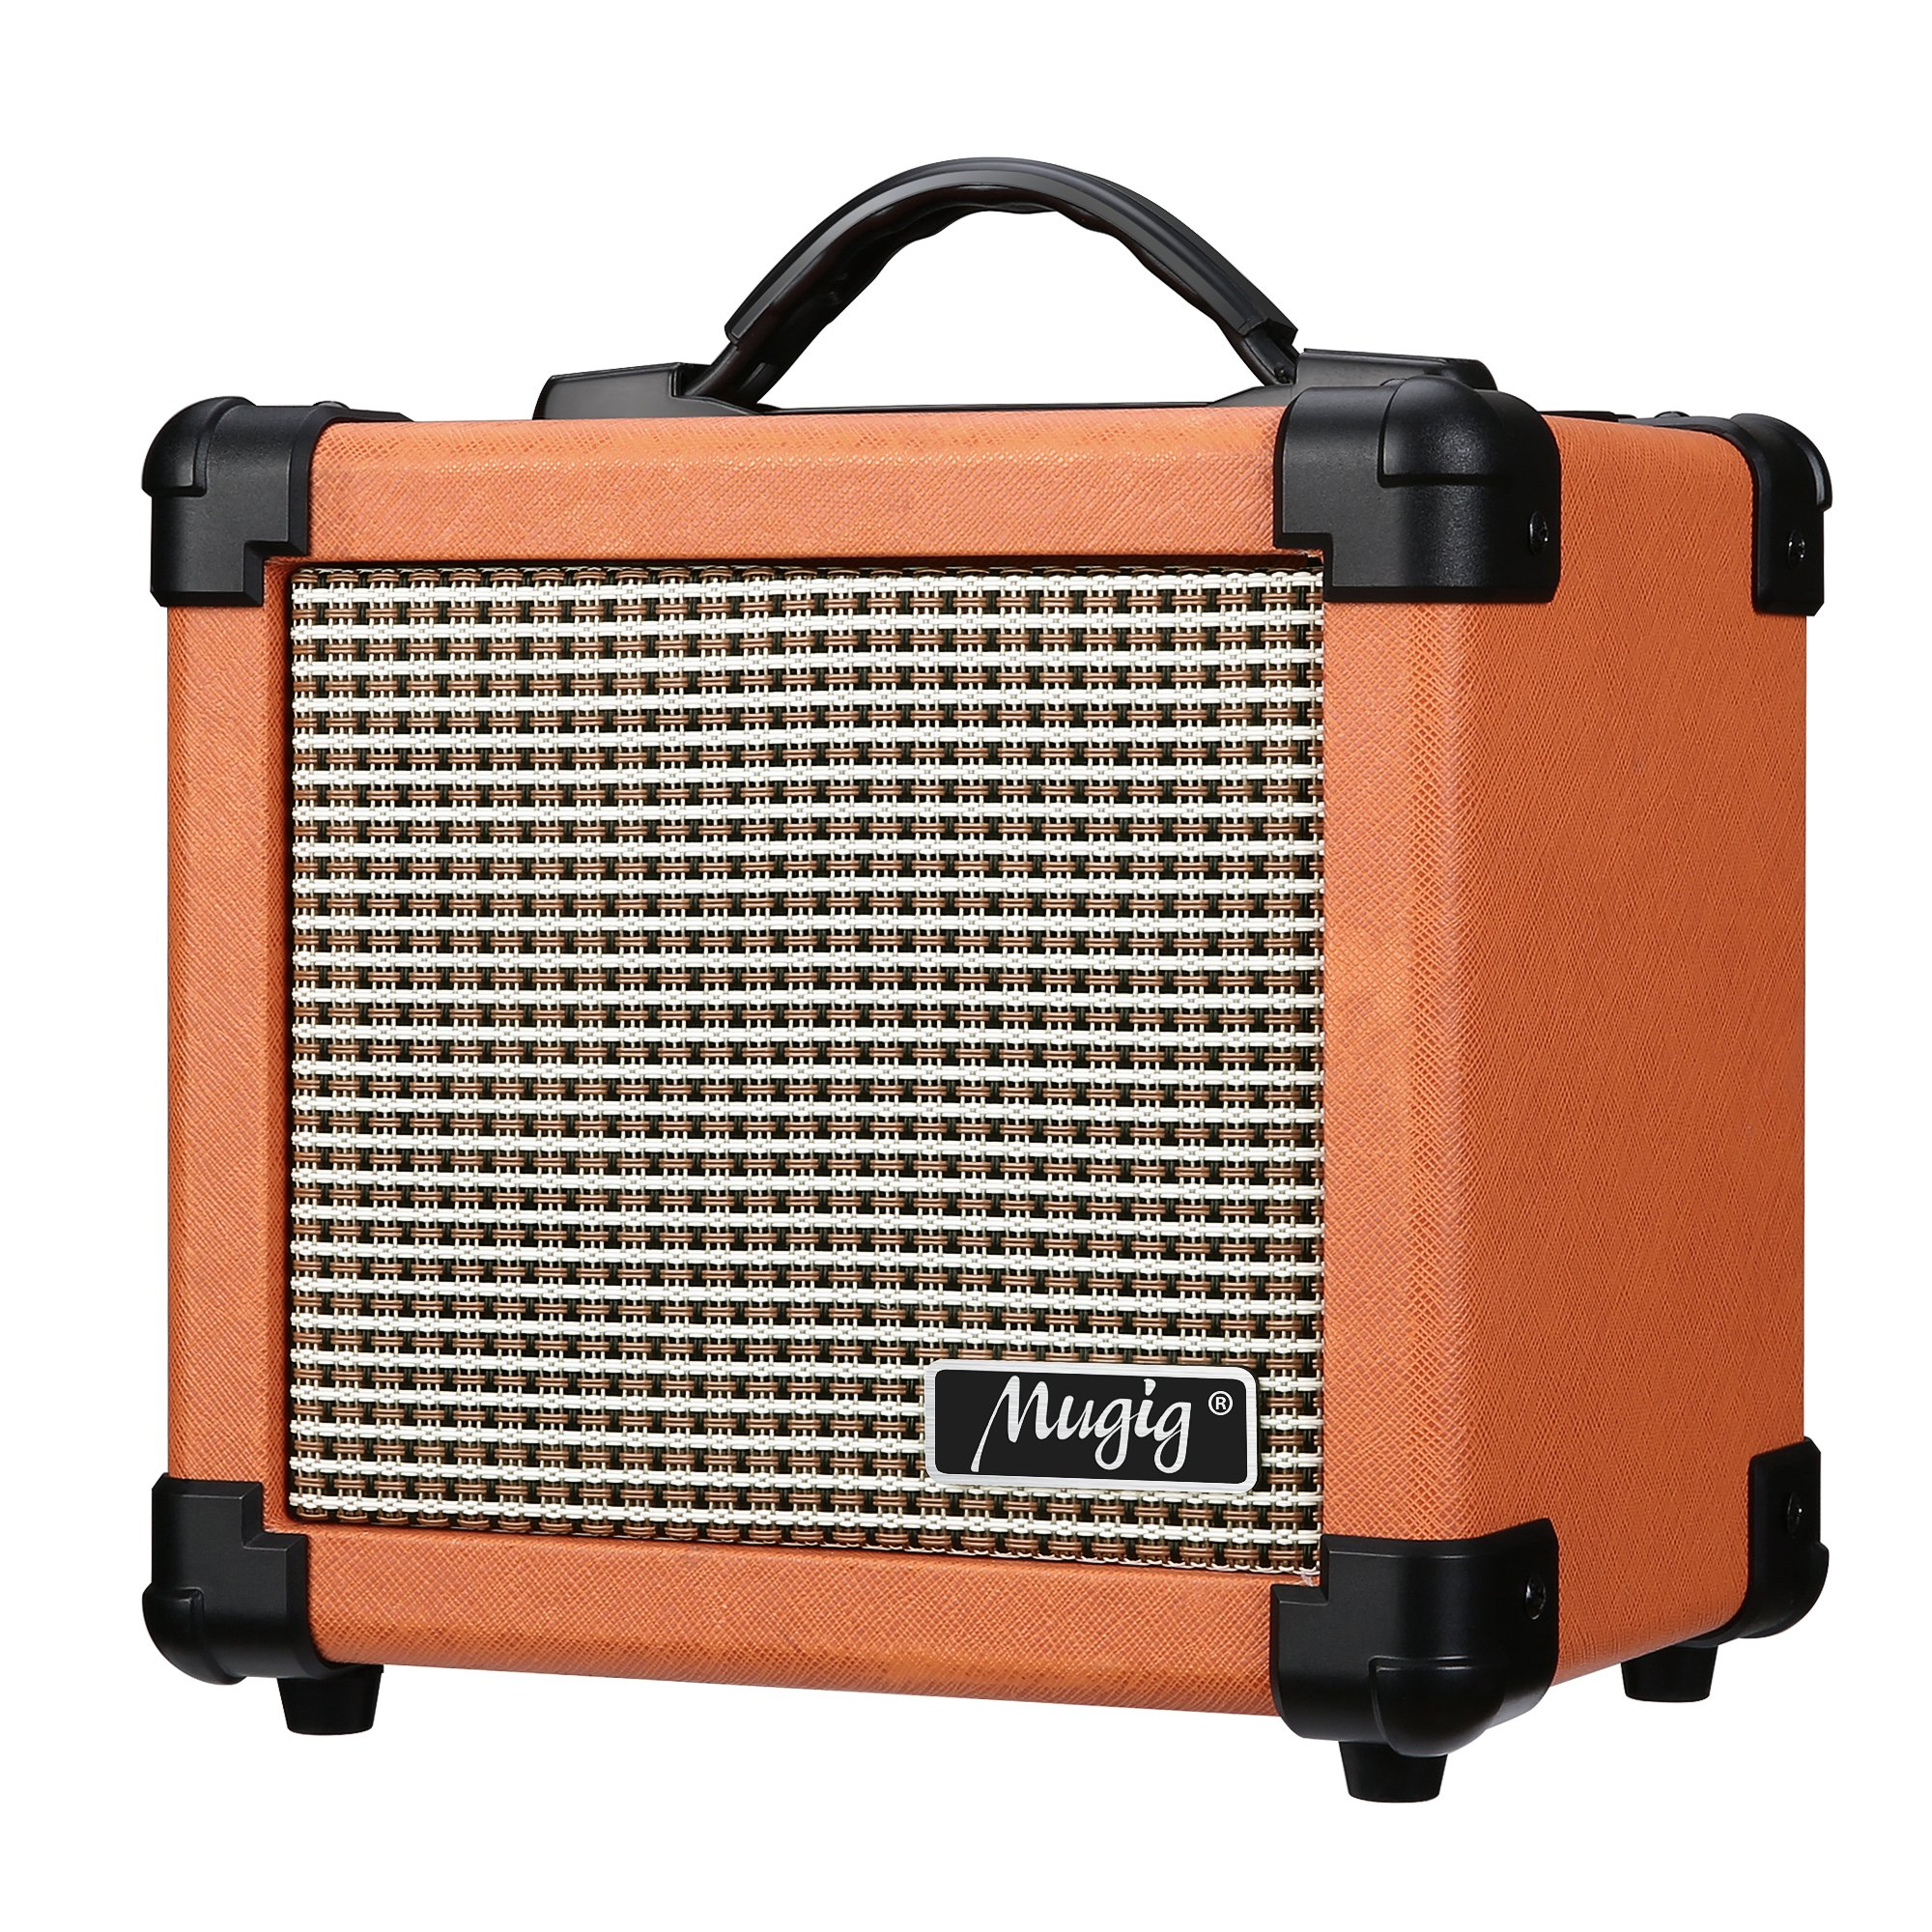 Mugig Guitar Amplifier 10W with Two Adjustable Channels and Dist Effects, Powered by 6 AA Batteries or AC Adapter by Mugig